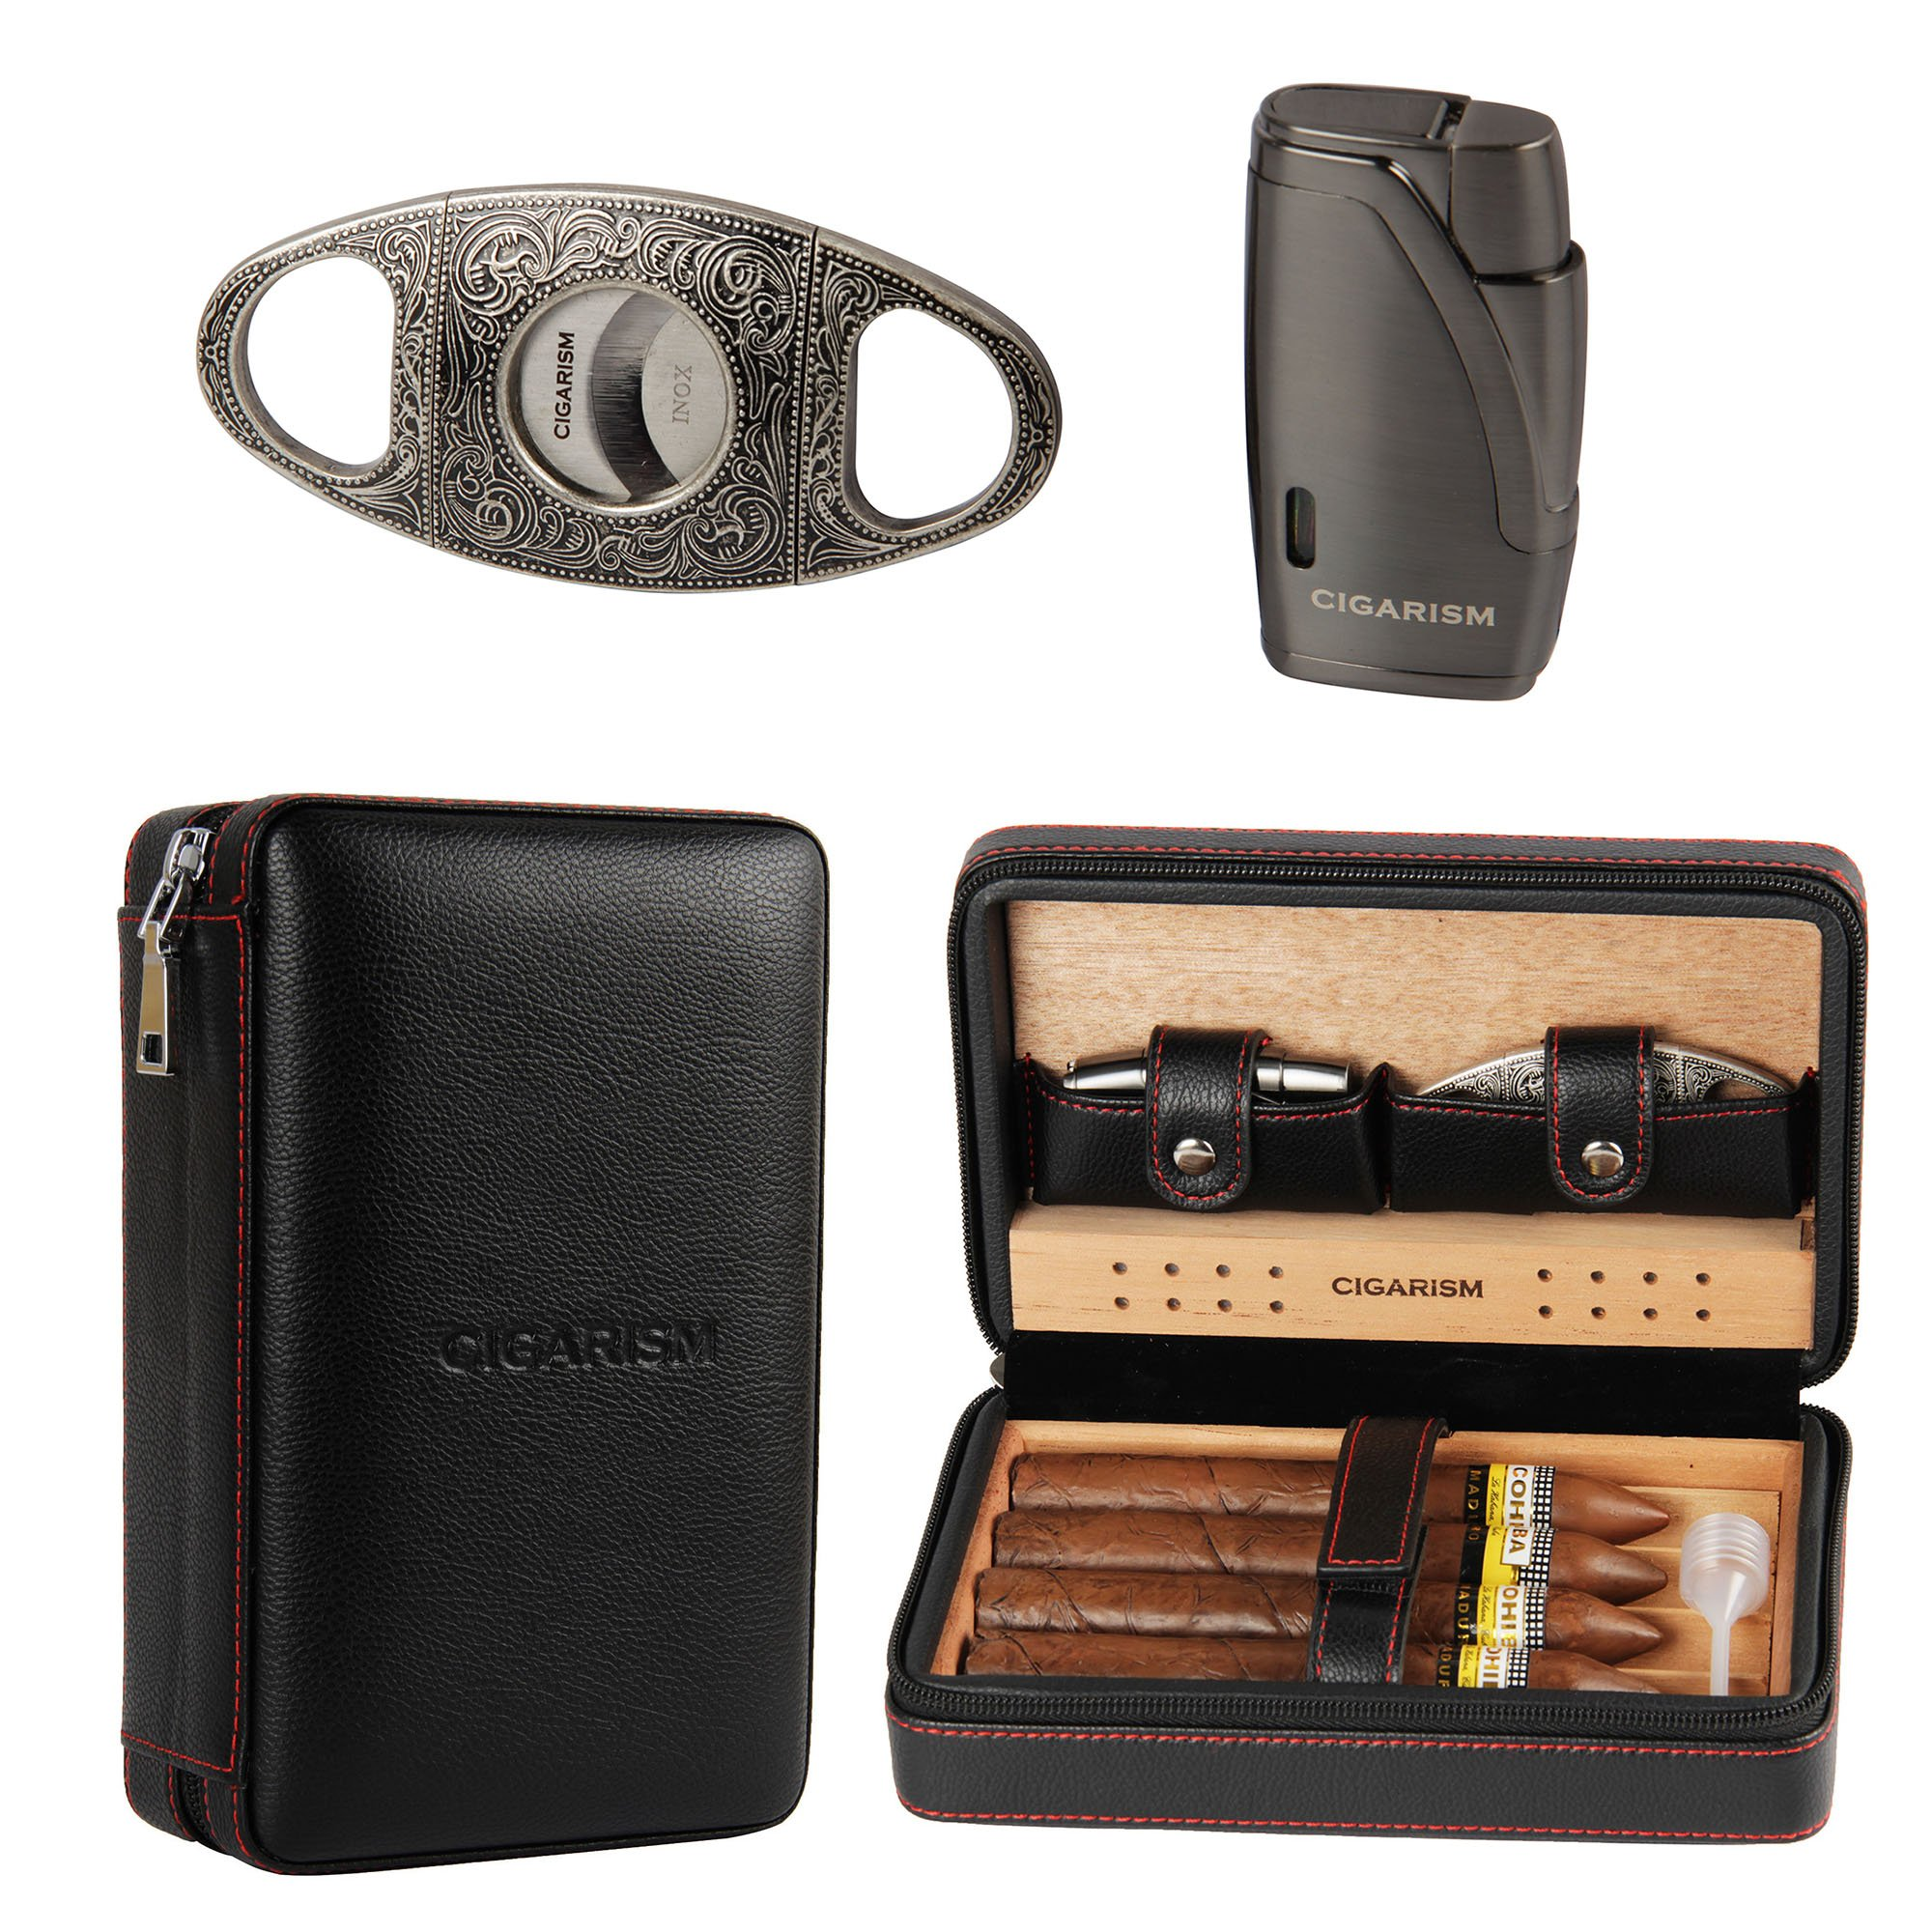 CIGARISM Cedar Lined Cigar Case Travel Humidor W/Cutter Set 4 Count (Black) by CIGARISM